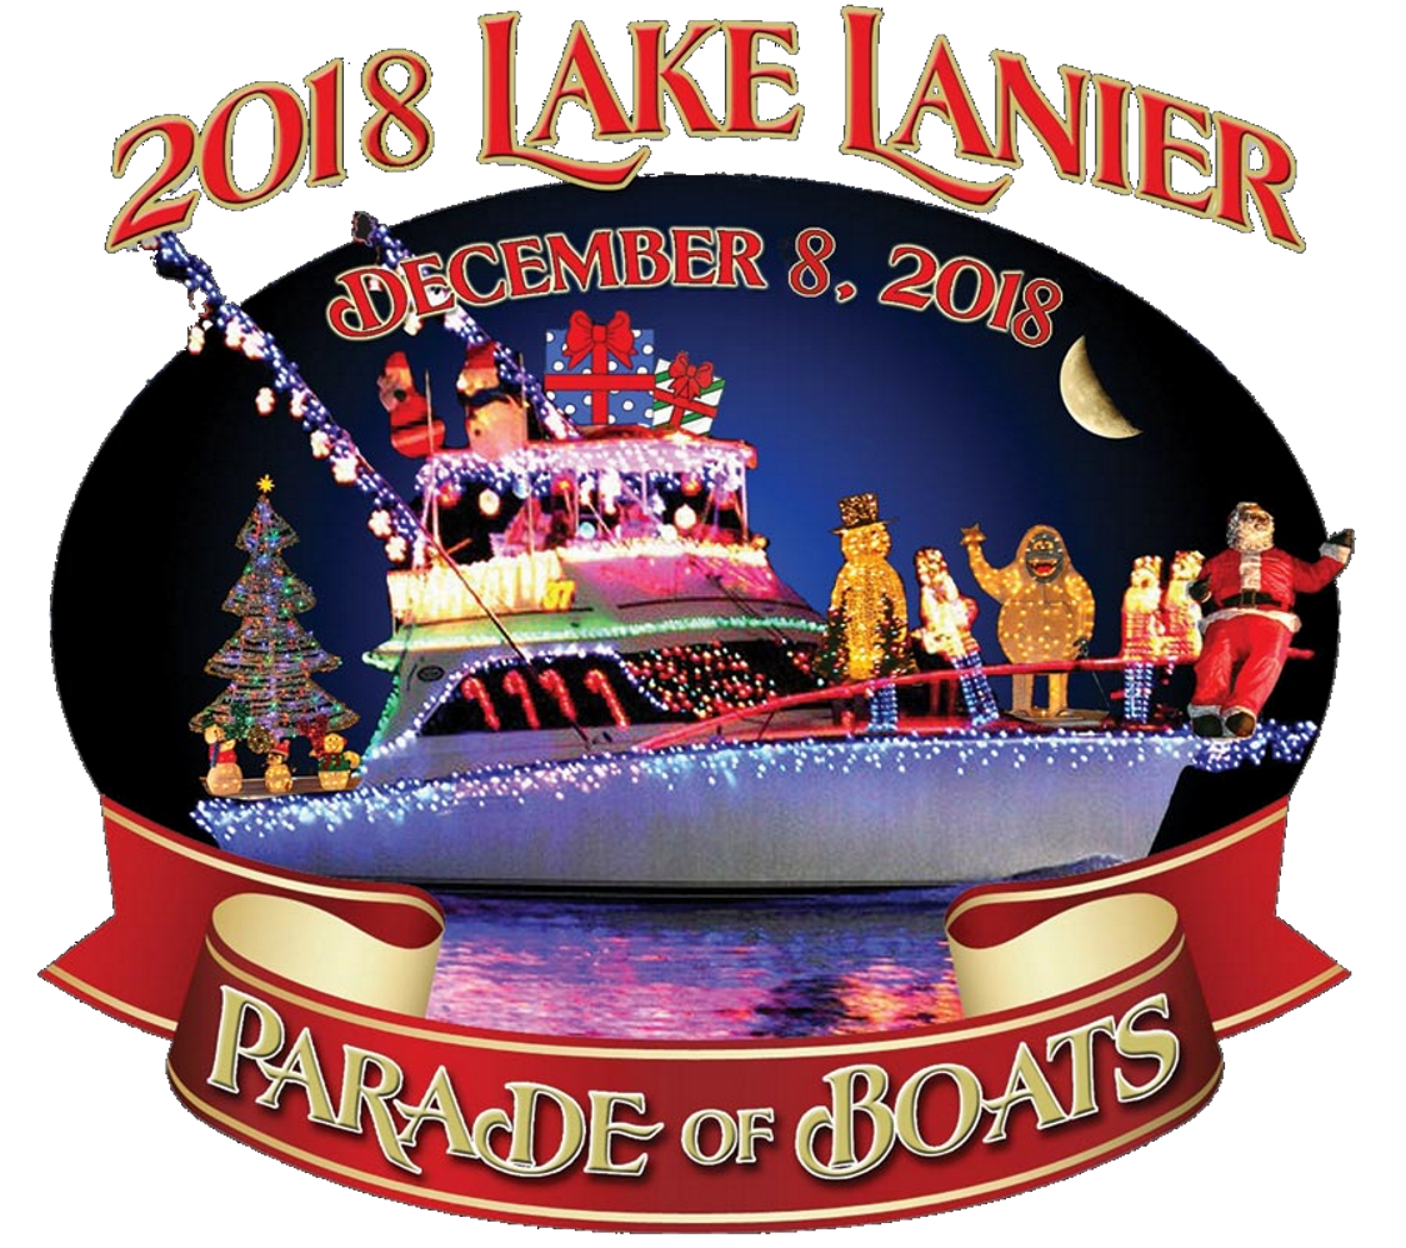 Parade of Boats Logo